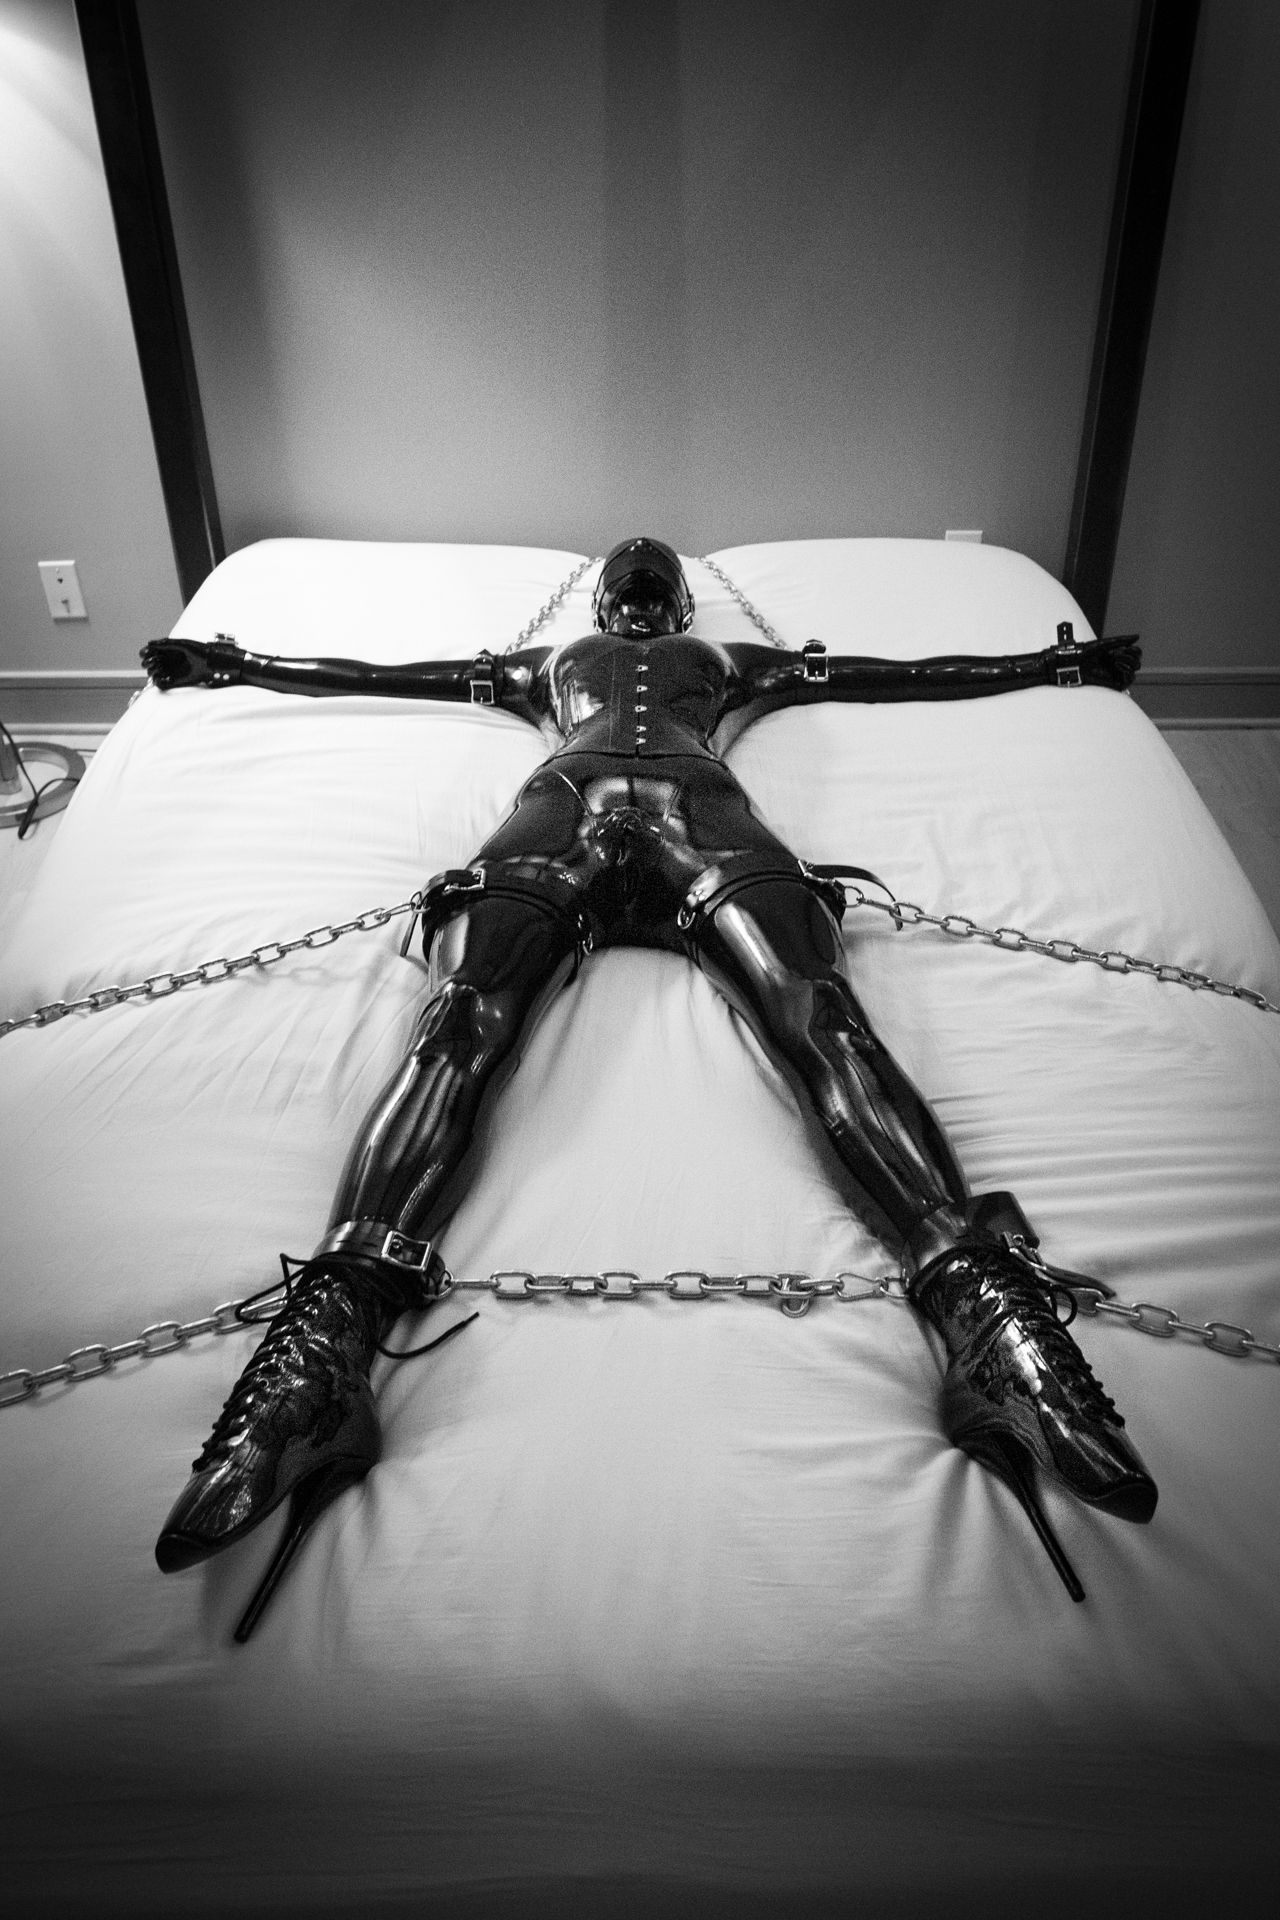 Covered in latex and chained to the bed